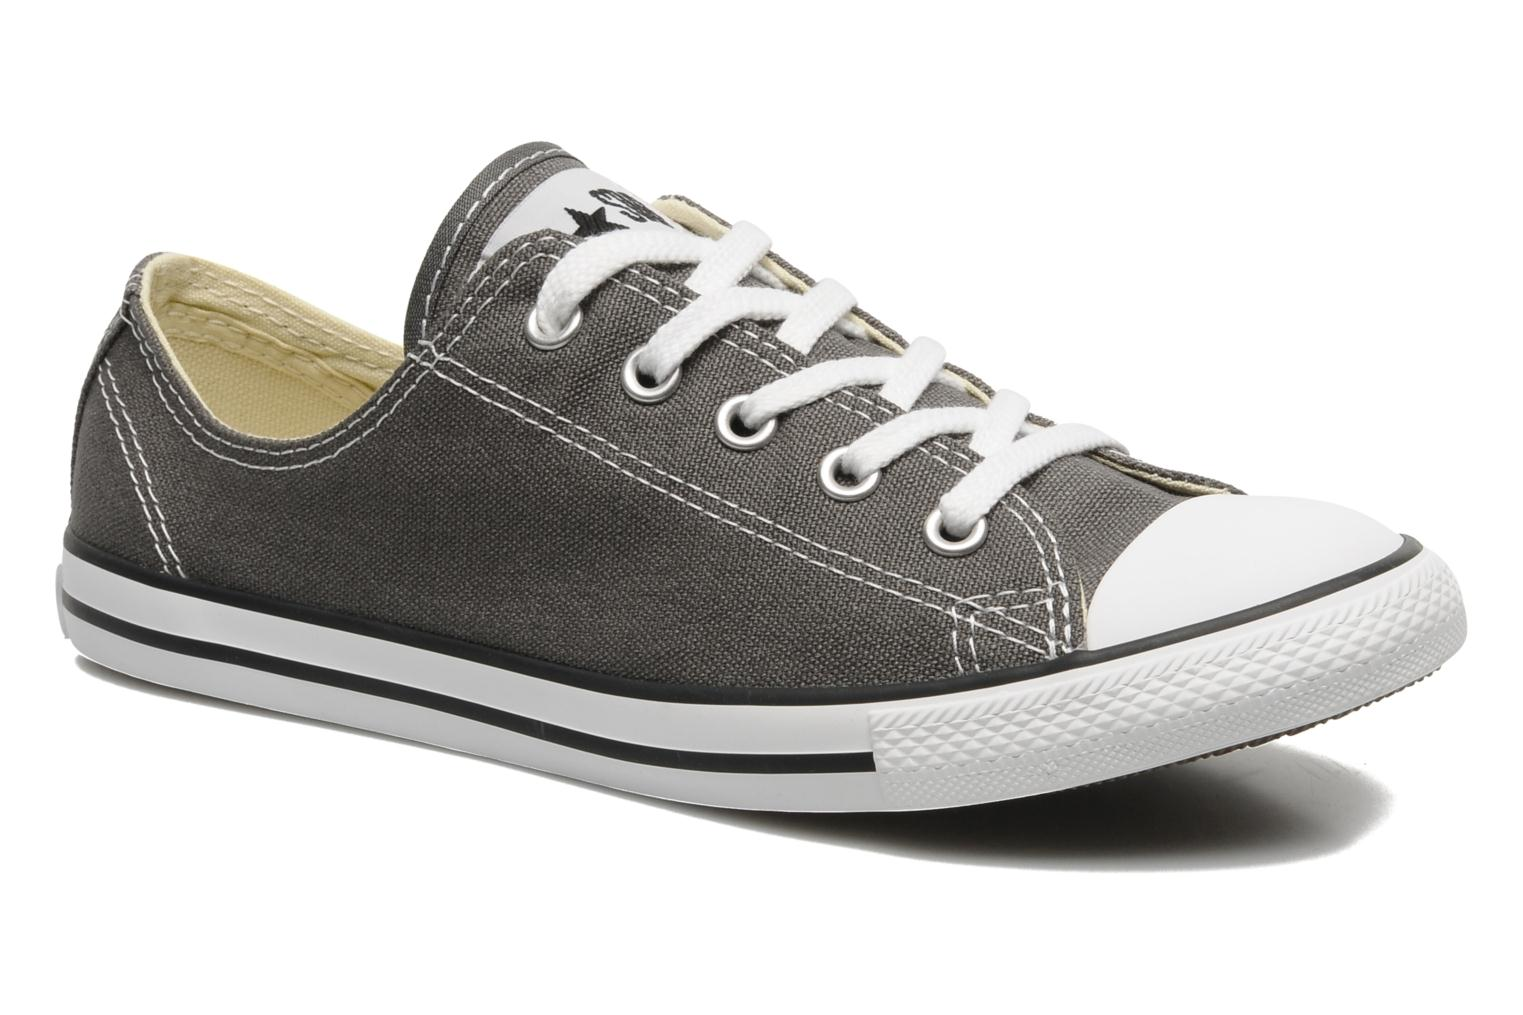 Donna Converse All Star Dainty Canvas Ox W Sneakers Grigio